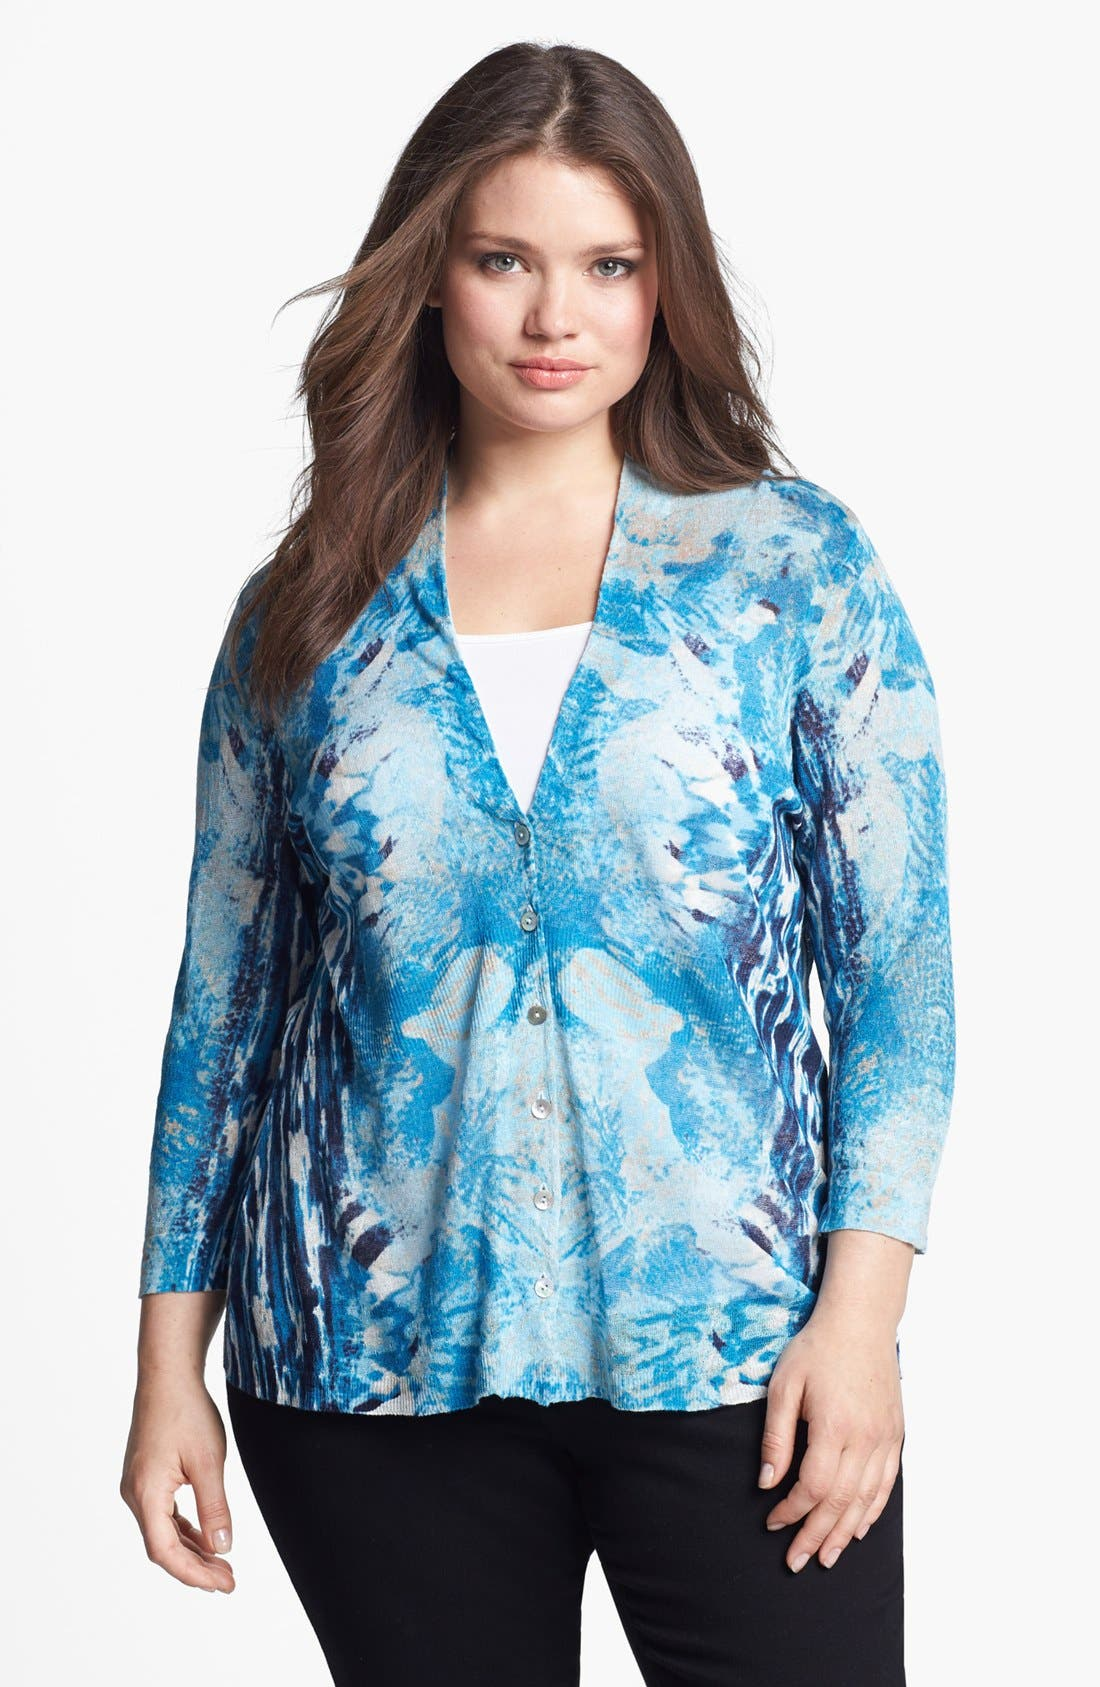 Main Image - Nic + Zoe 'High Tide' Print Cardigan (Plus Size)